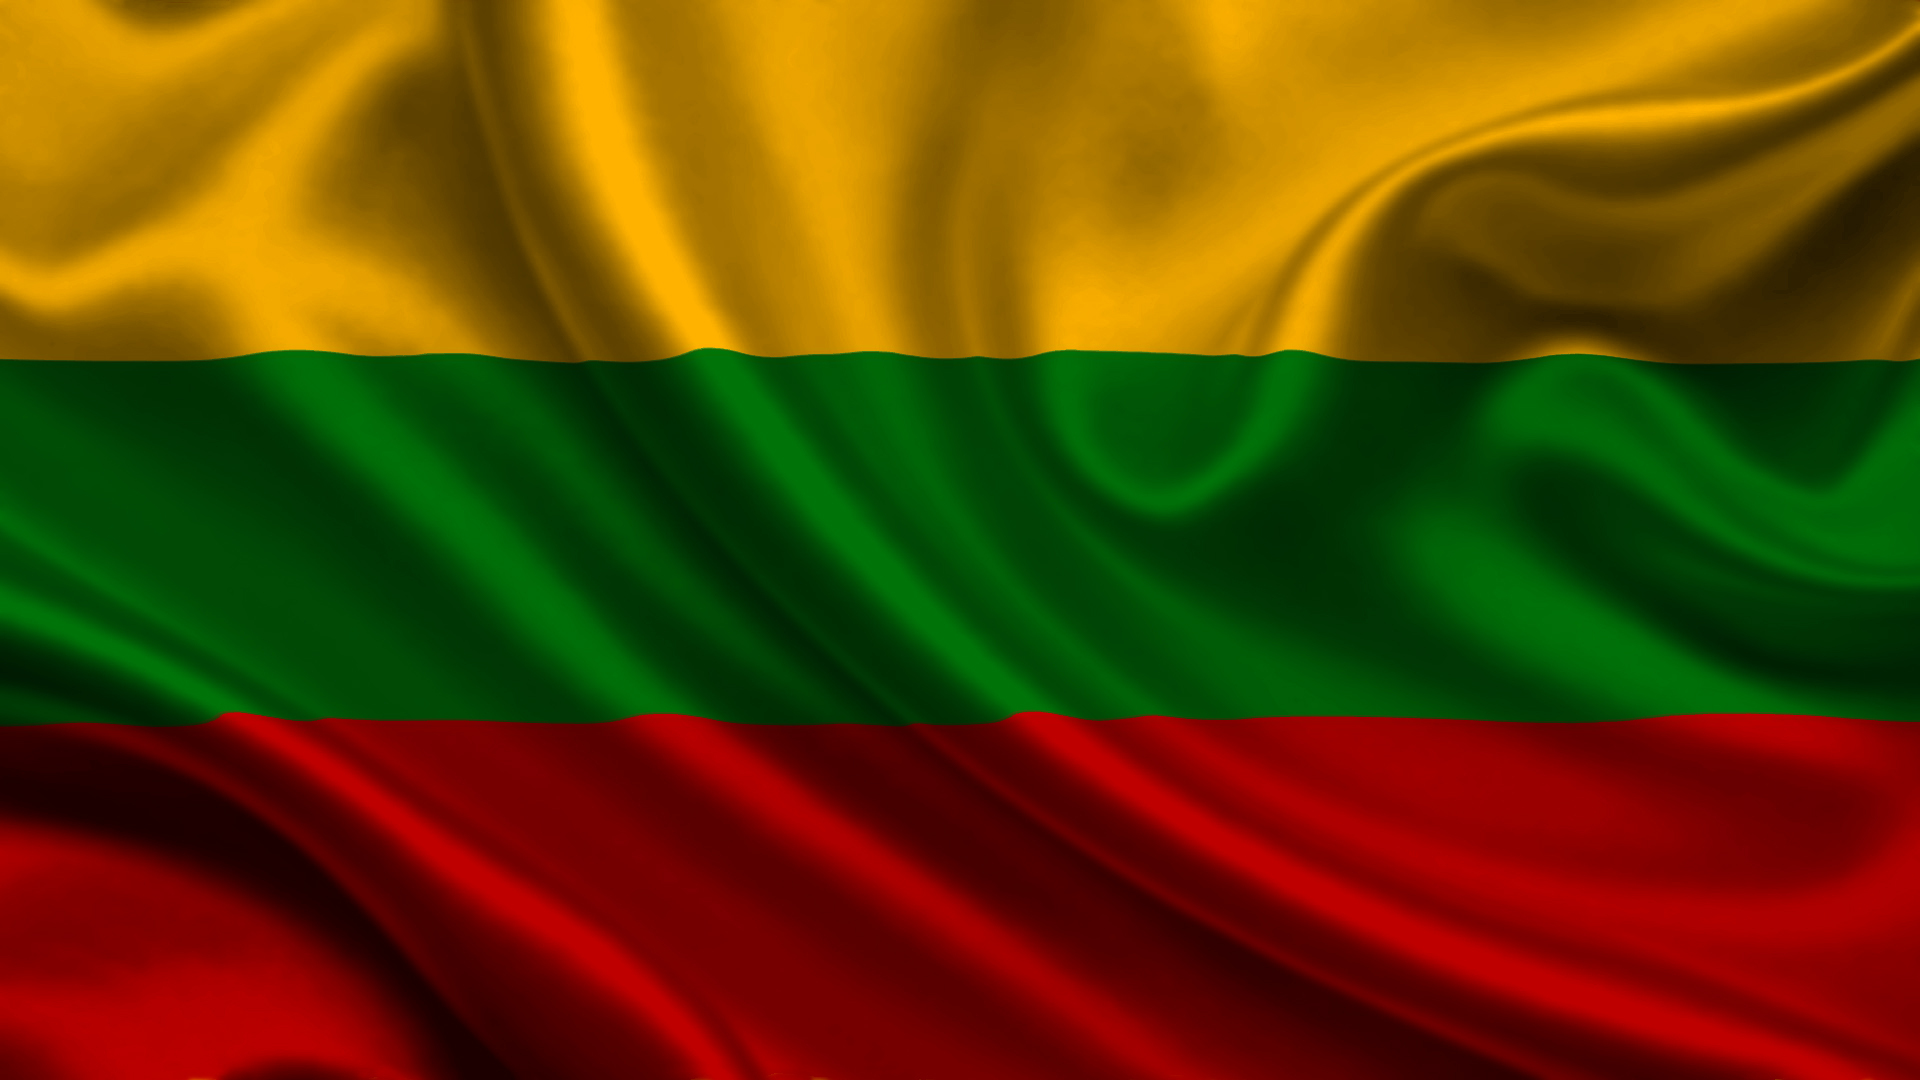 Lithuania clarifies stance on cryptocurrencies